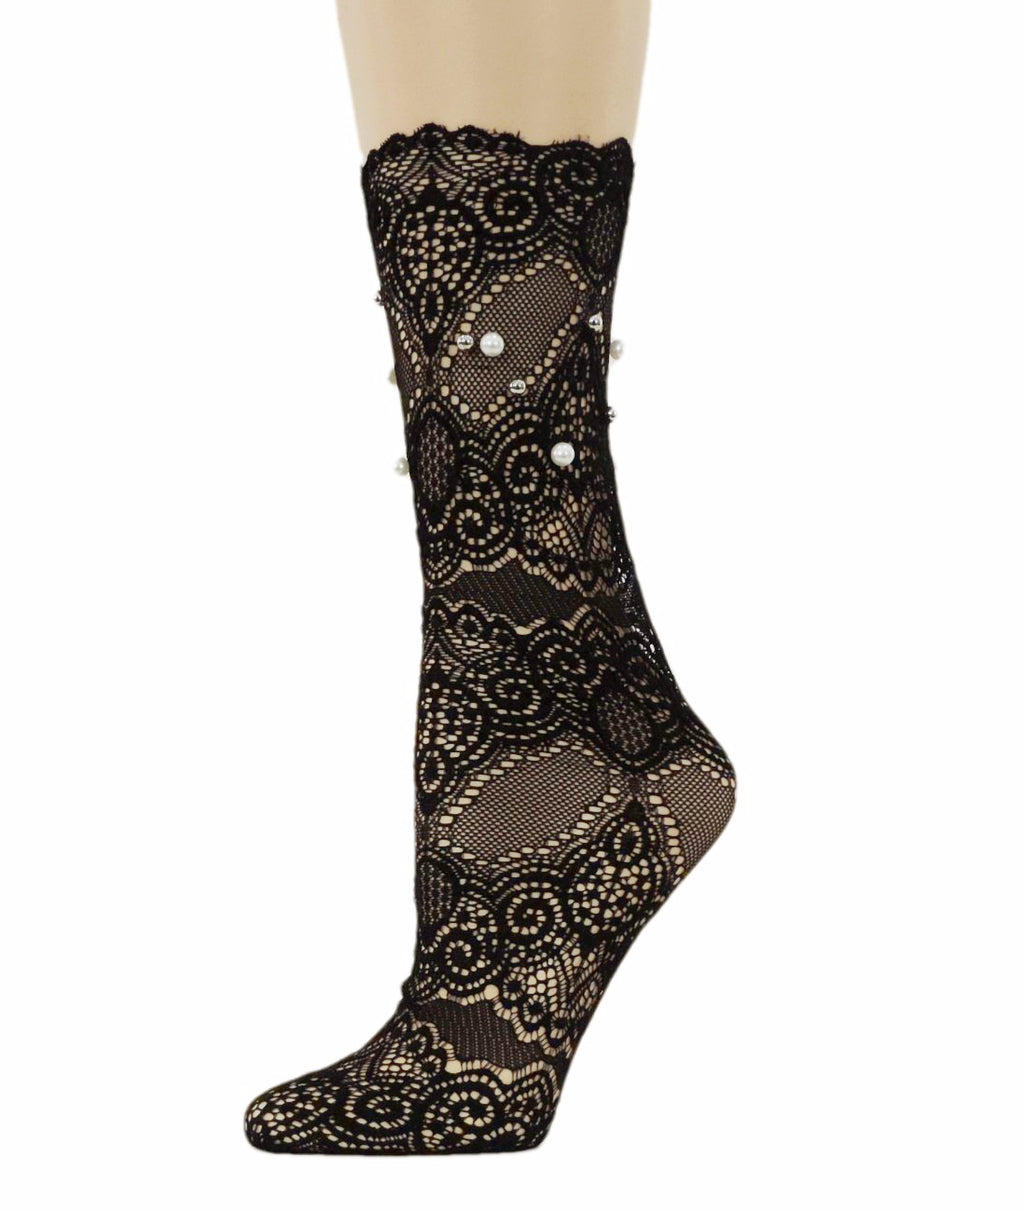 Grace Black Mesh Socks with Pearls - Global Trendz Fashion®